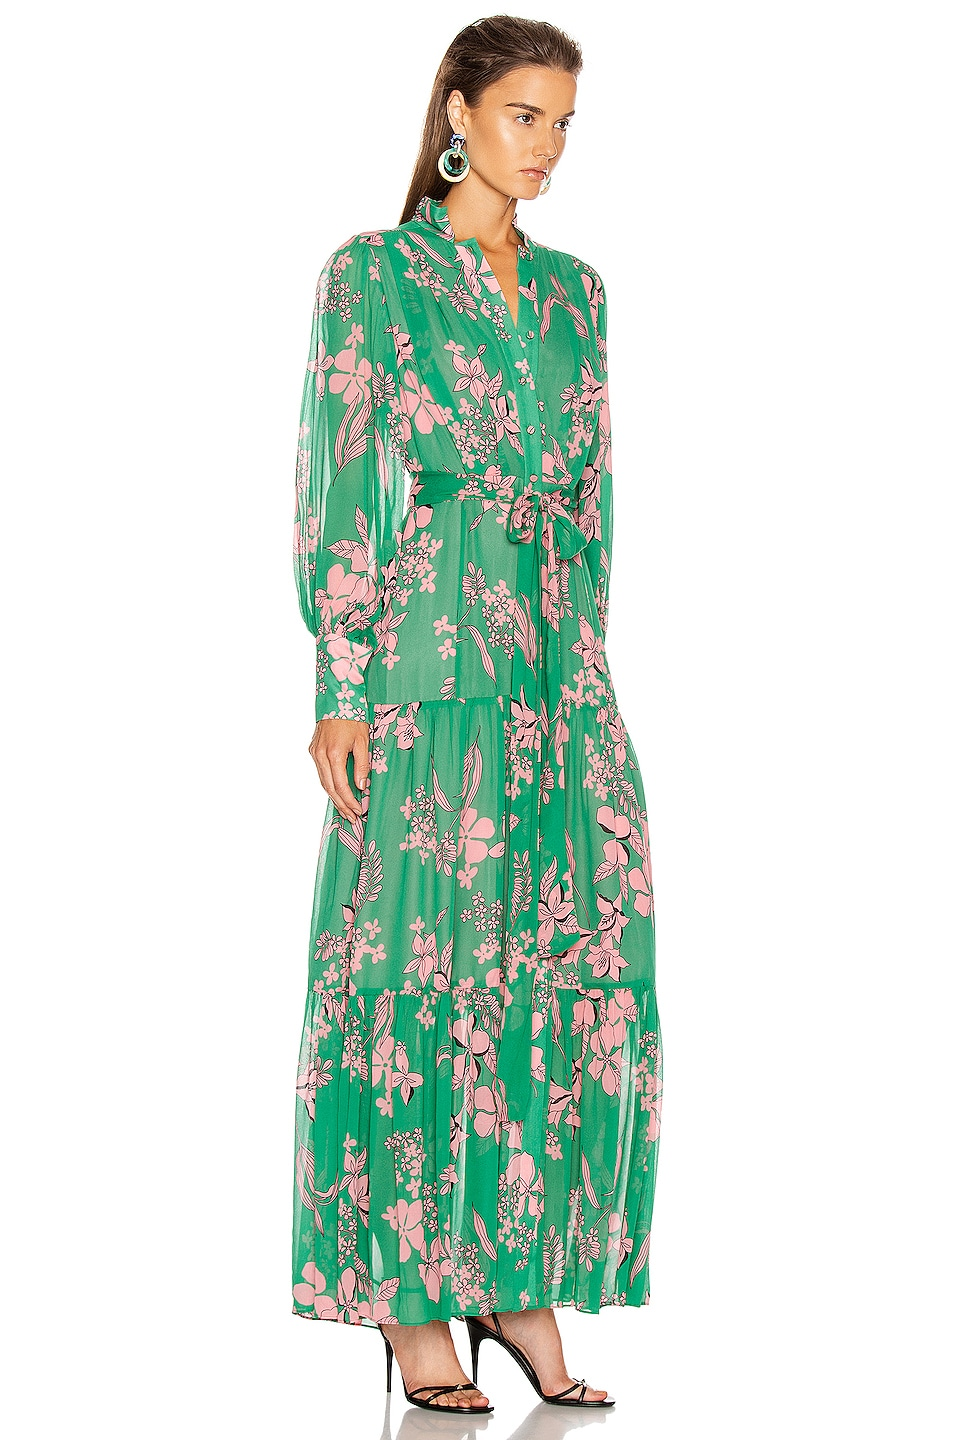 Image 2 of Alexis Rhoda Dress in Island Floral